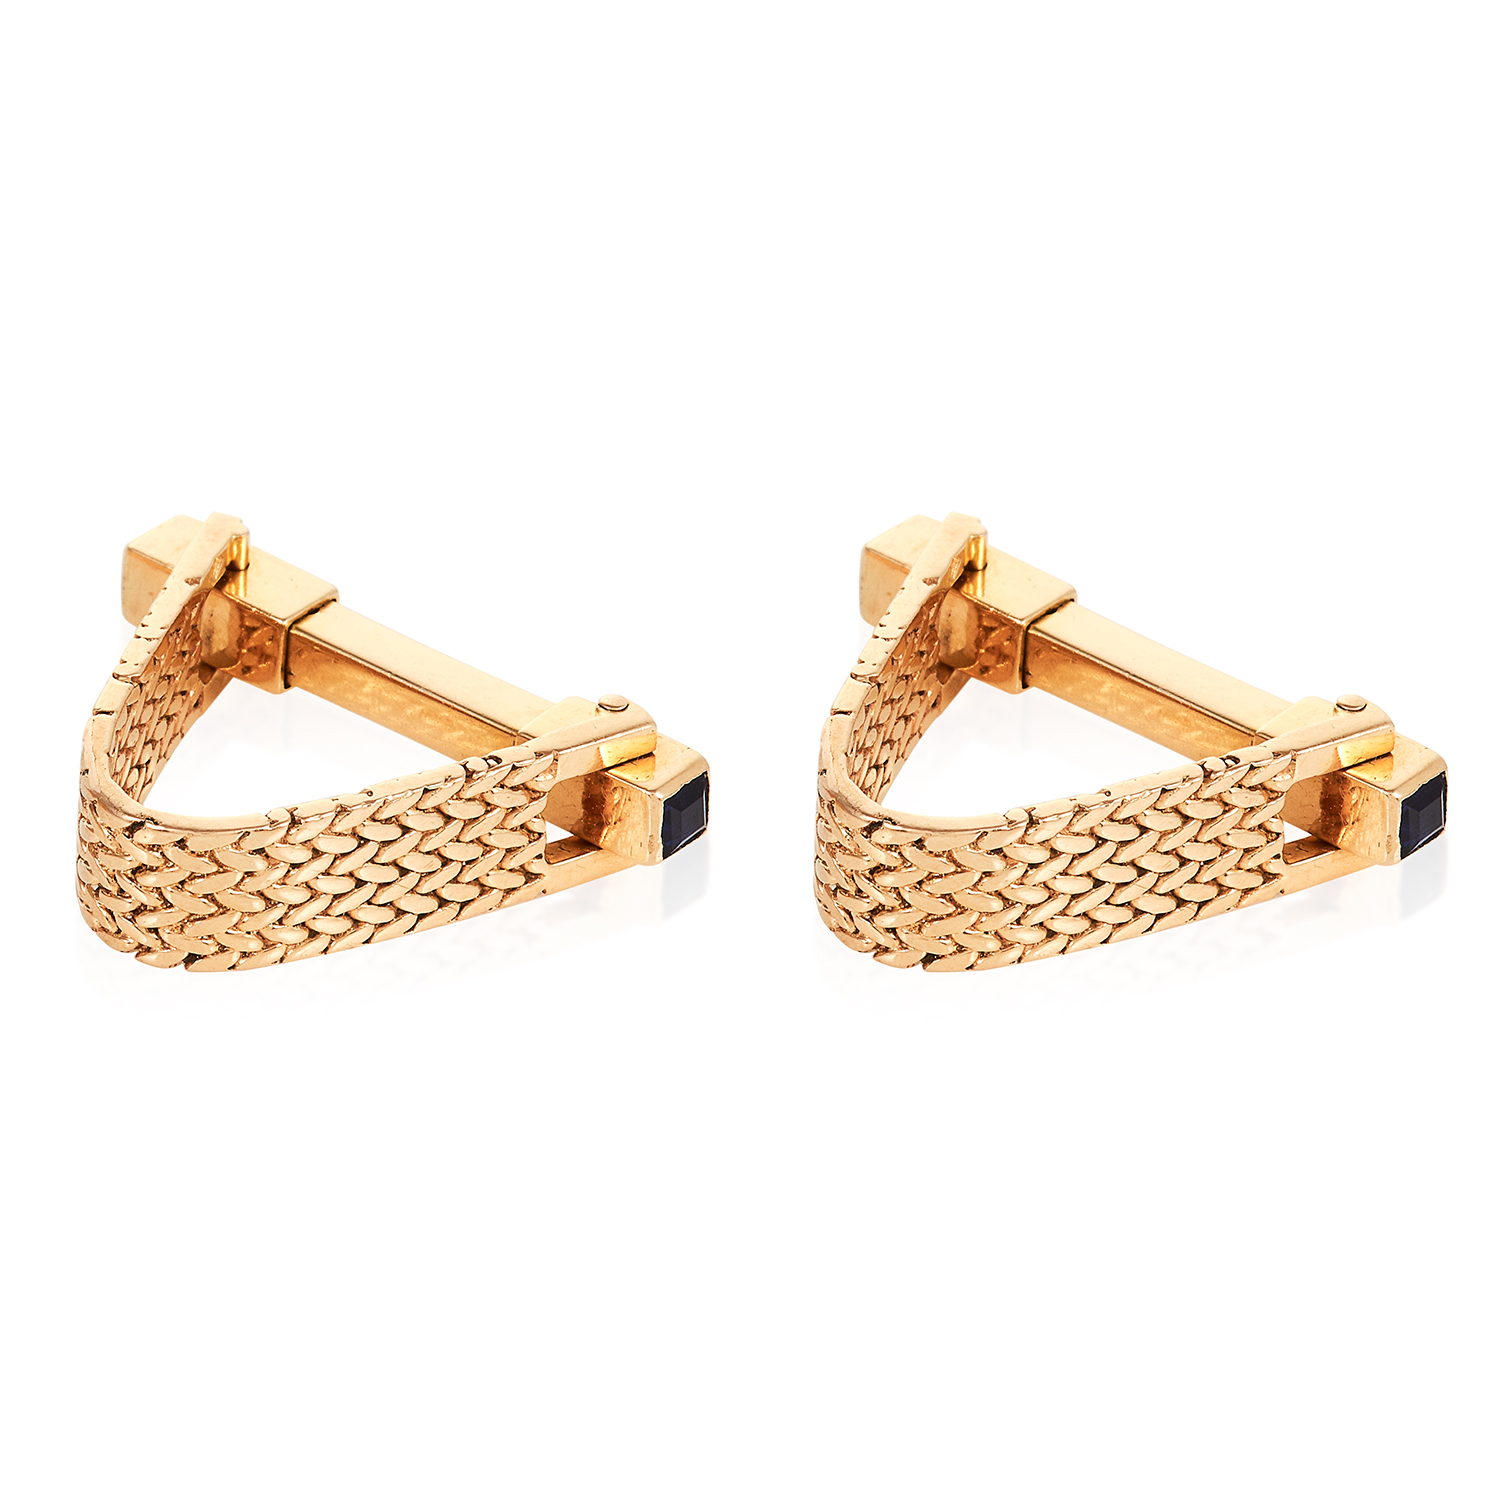 A PAIR OF SAPPHIRE STIRRUP CUFFLINKS in high carat yellow gold, designed as stirrups, jewelled